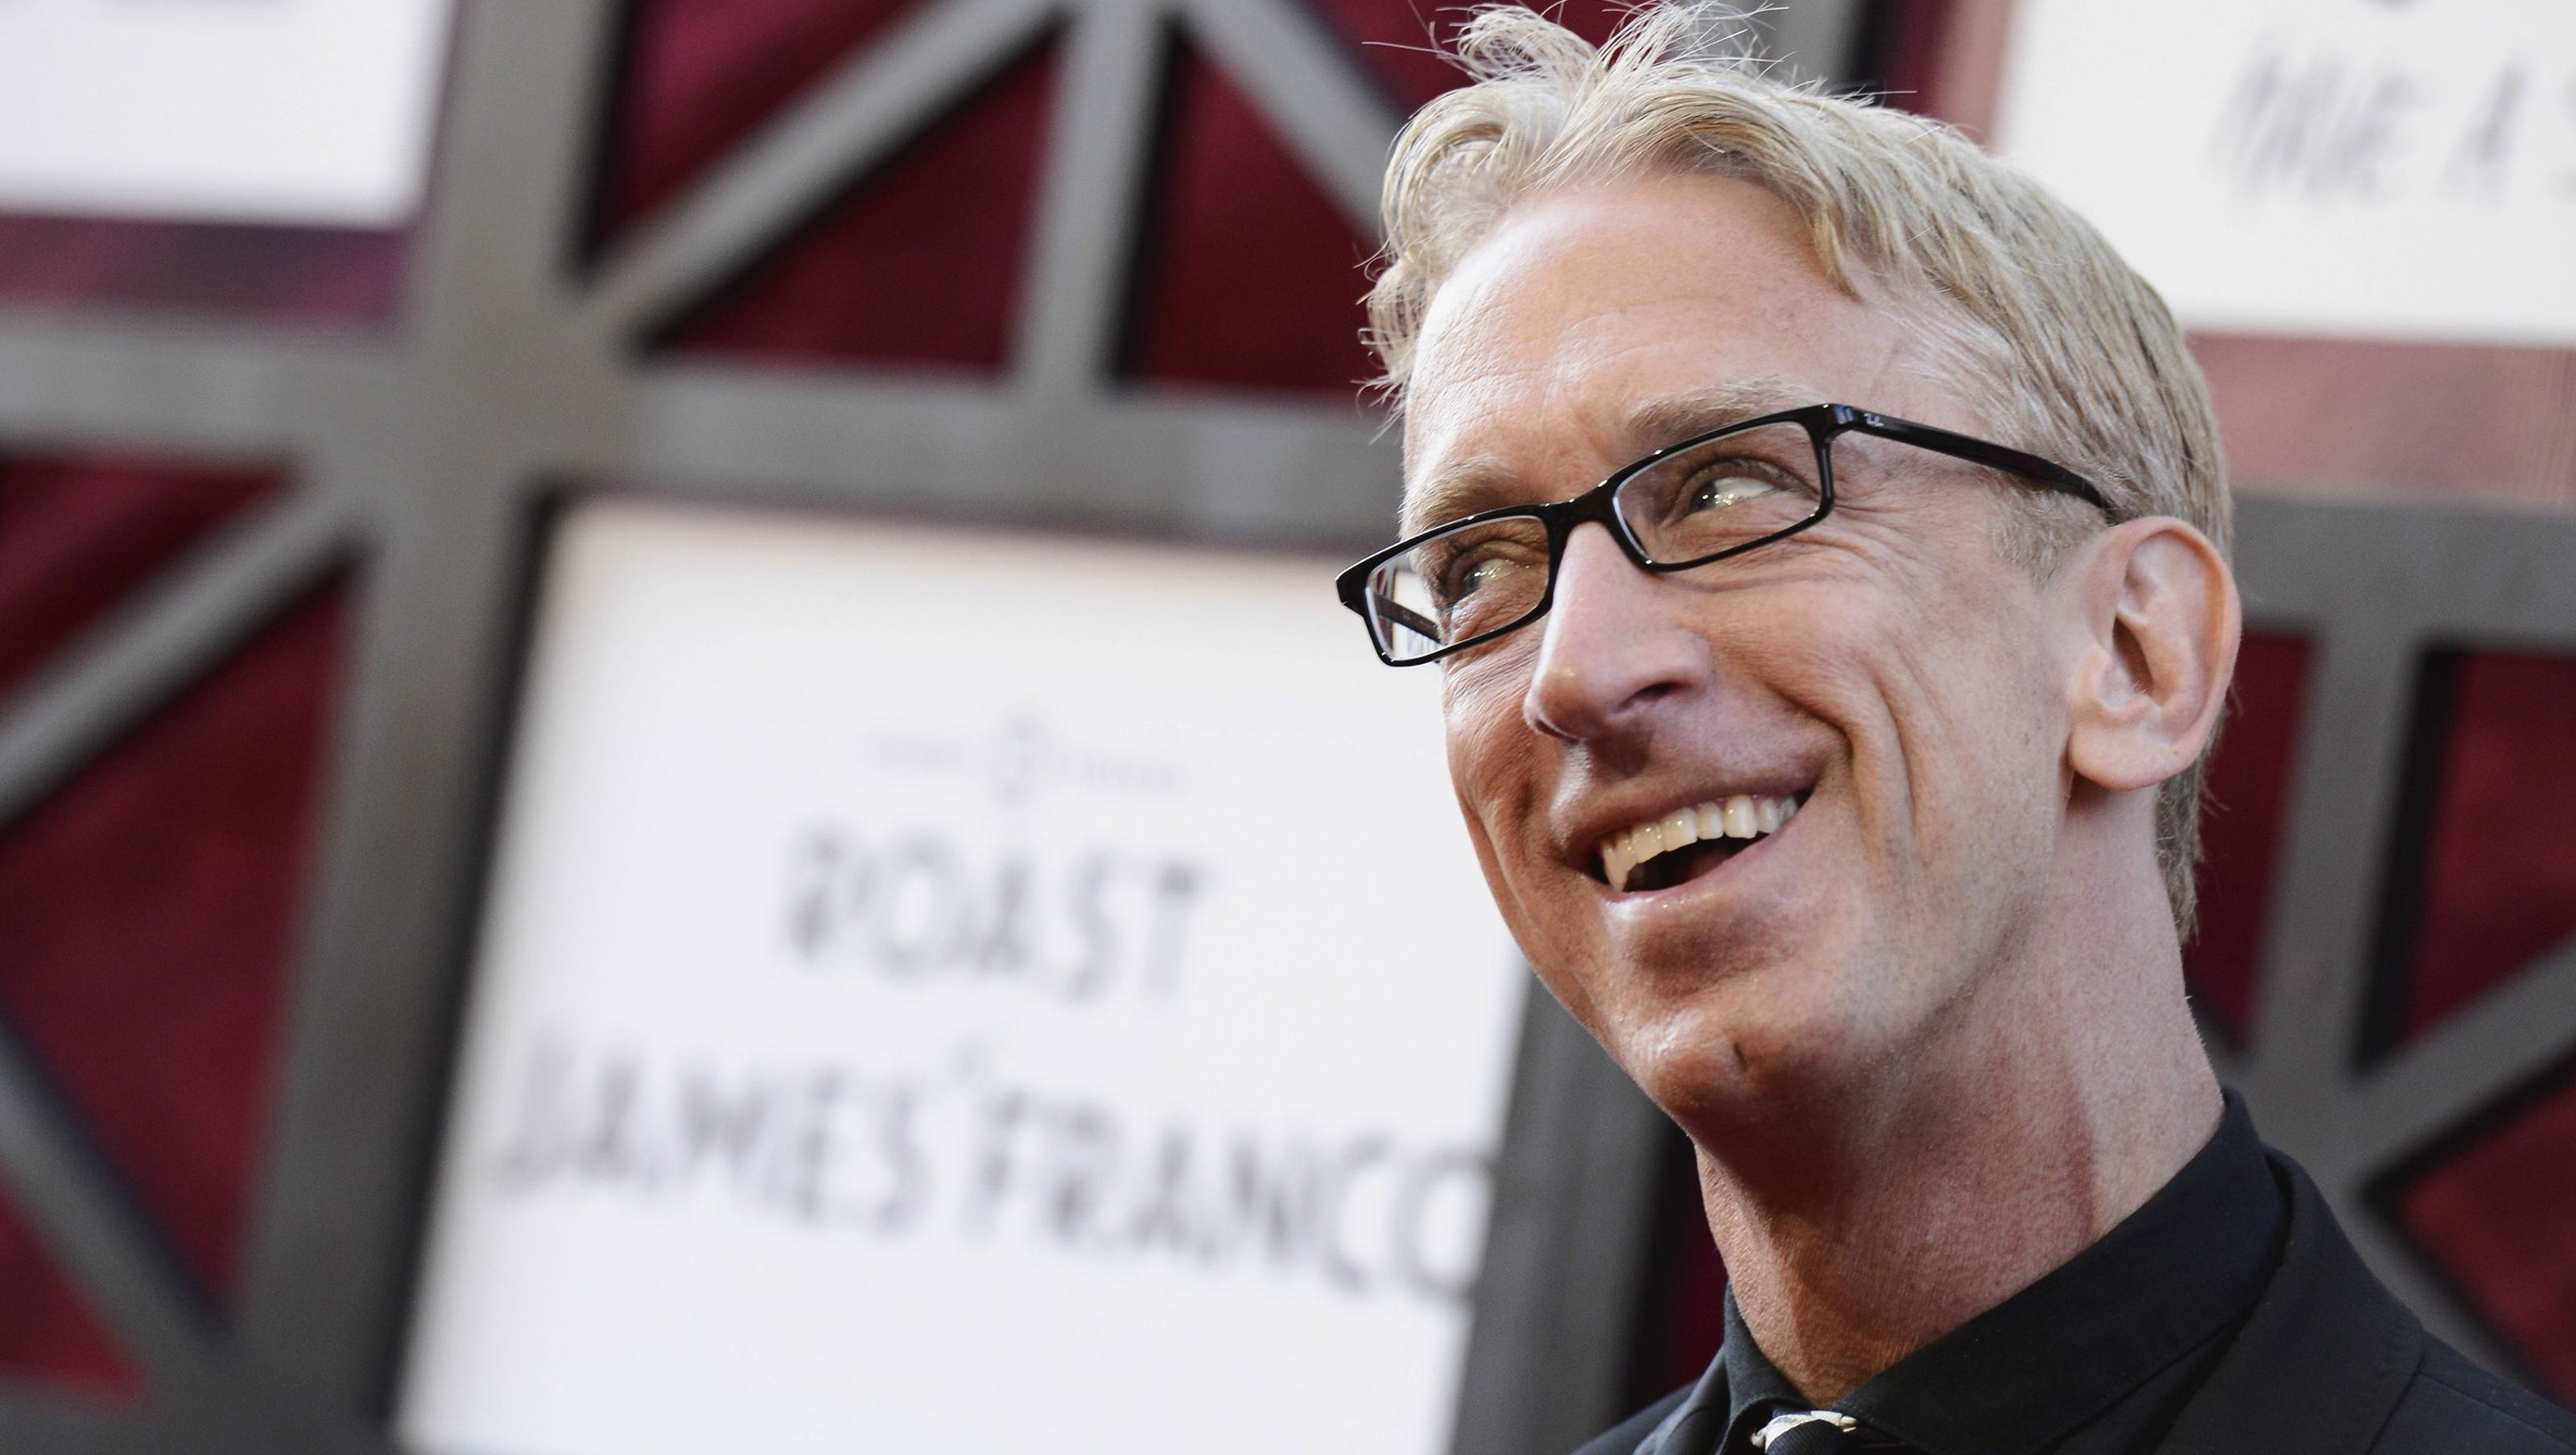 Andy Dick gropes Pamela Anderson's breasts, Ivanka Trump's leg in  resurfaced, decade-old clips